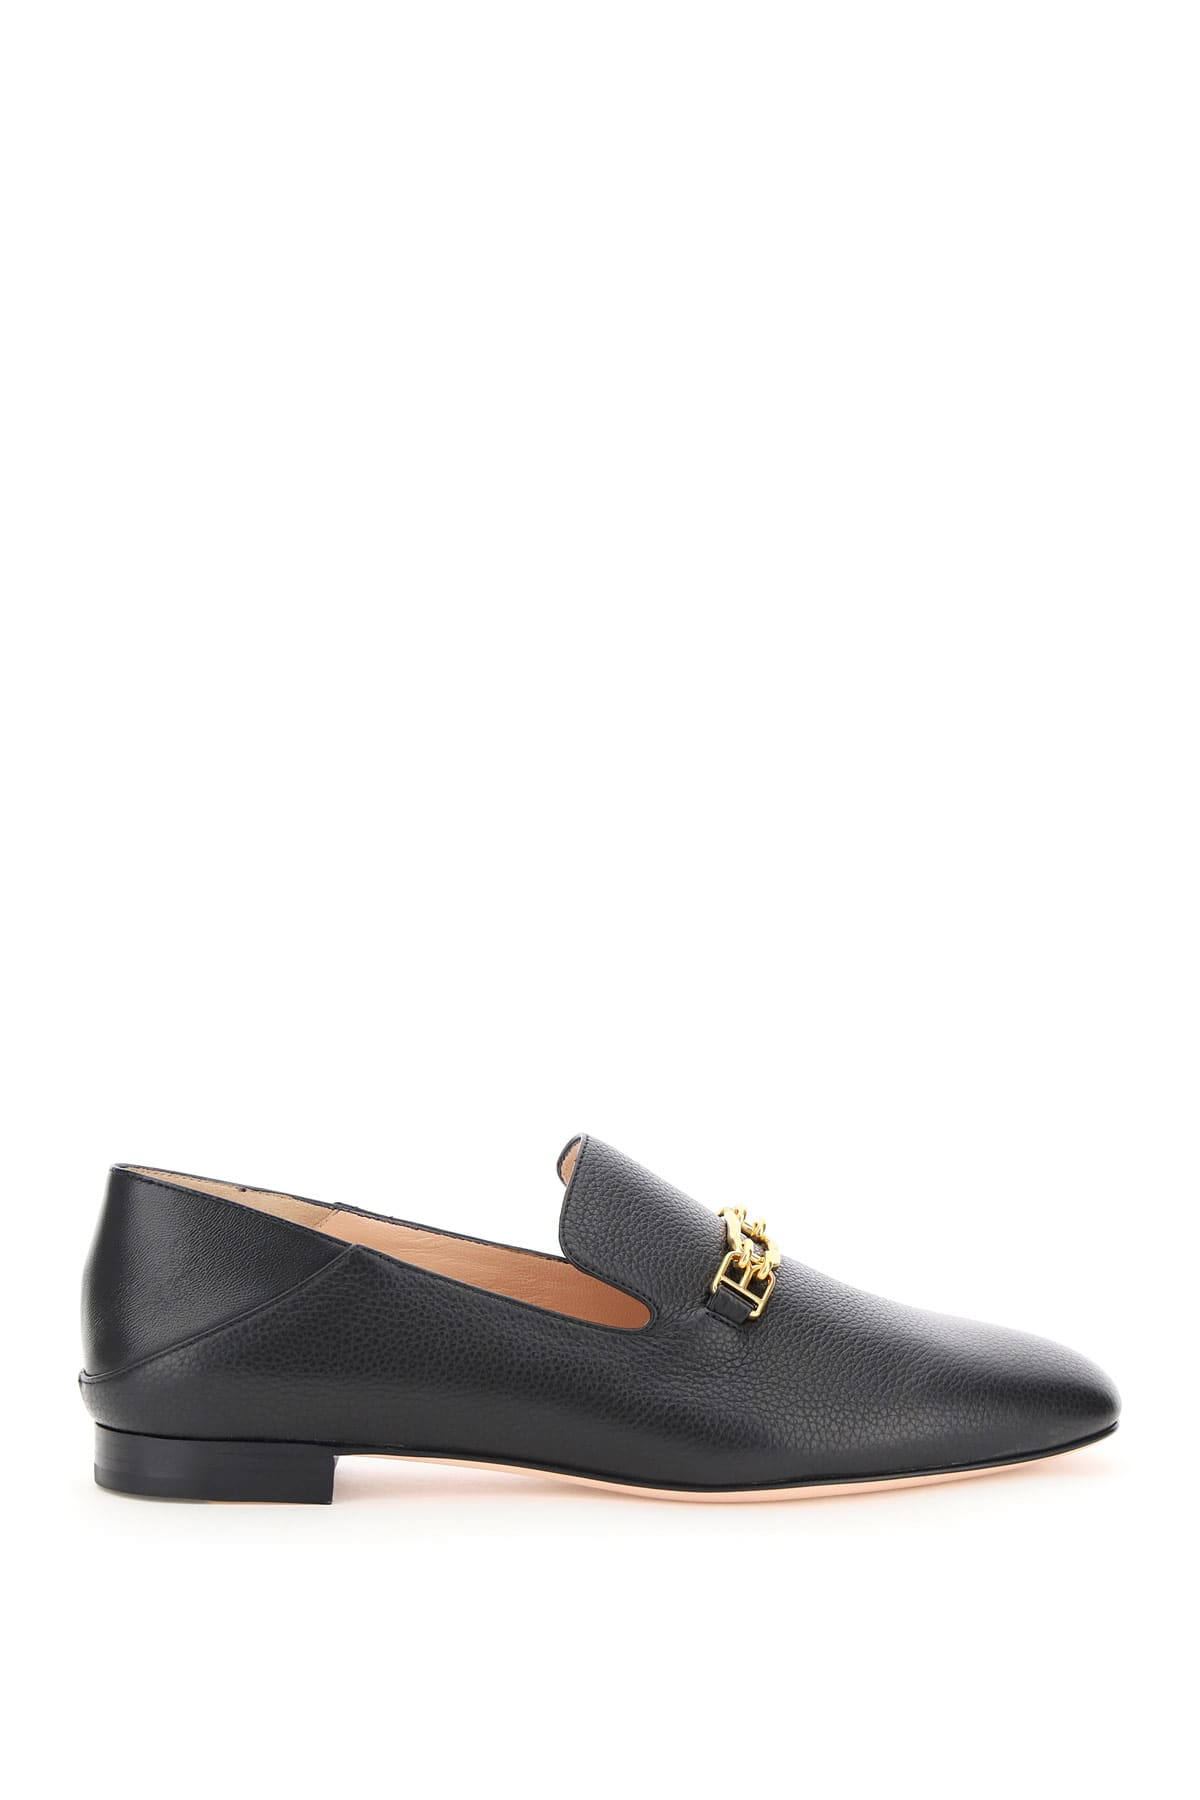 Bally DARCIE SLIPPER